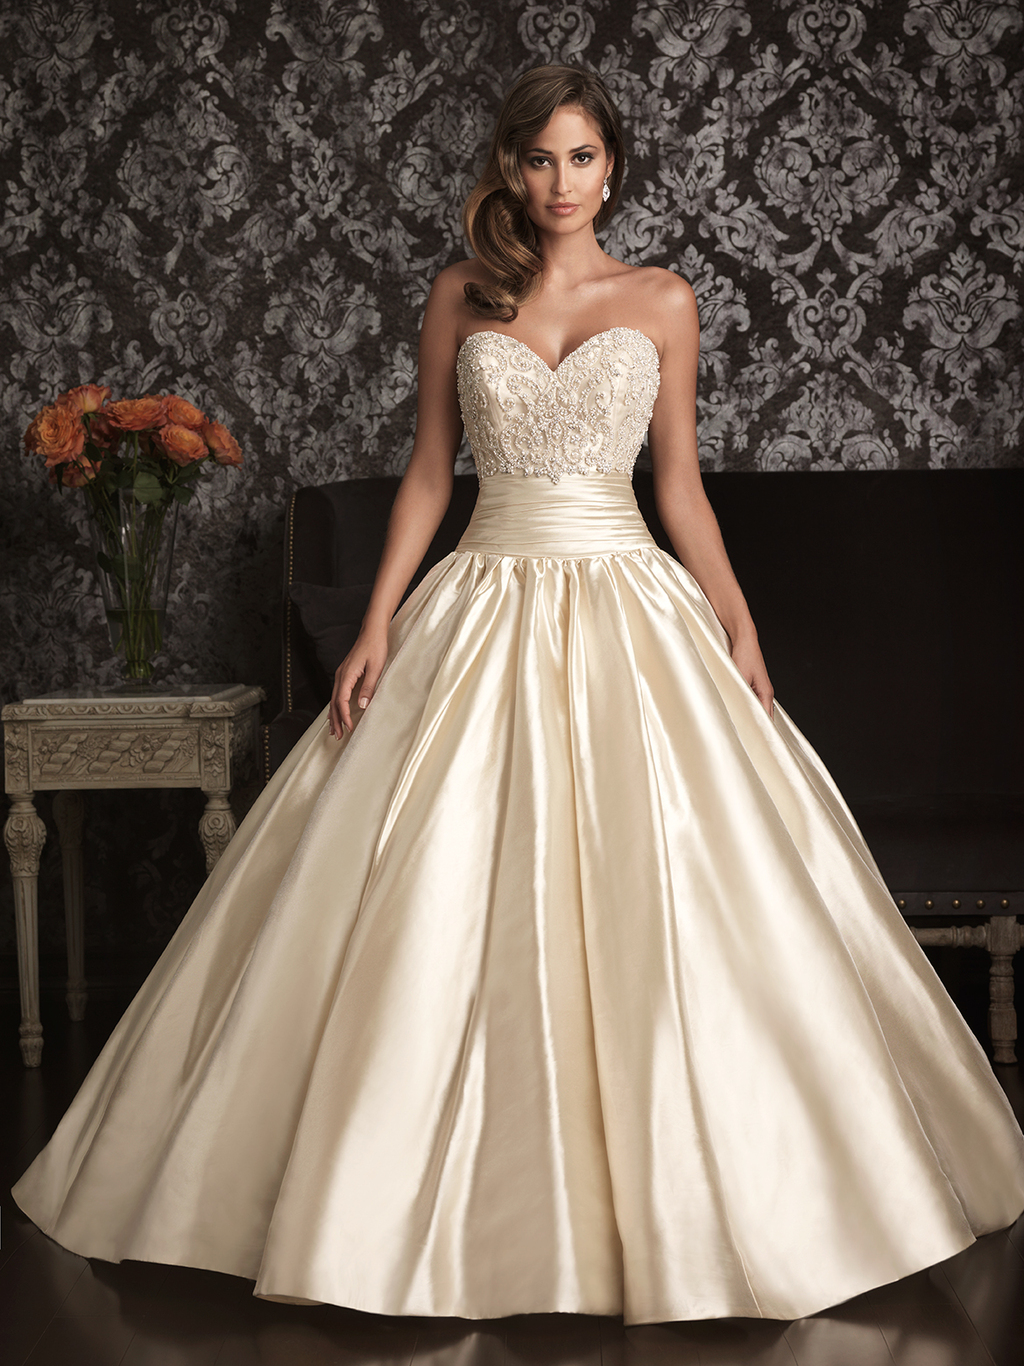 Allure Bridals Wedding Dress Bridal Gown Allure Collection Sweetheart 9001F